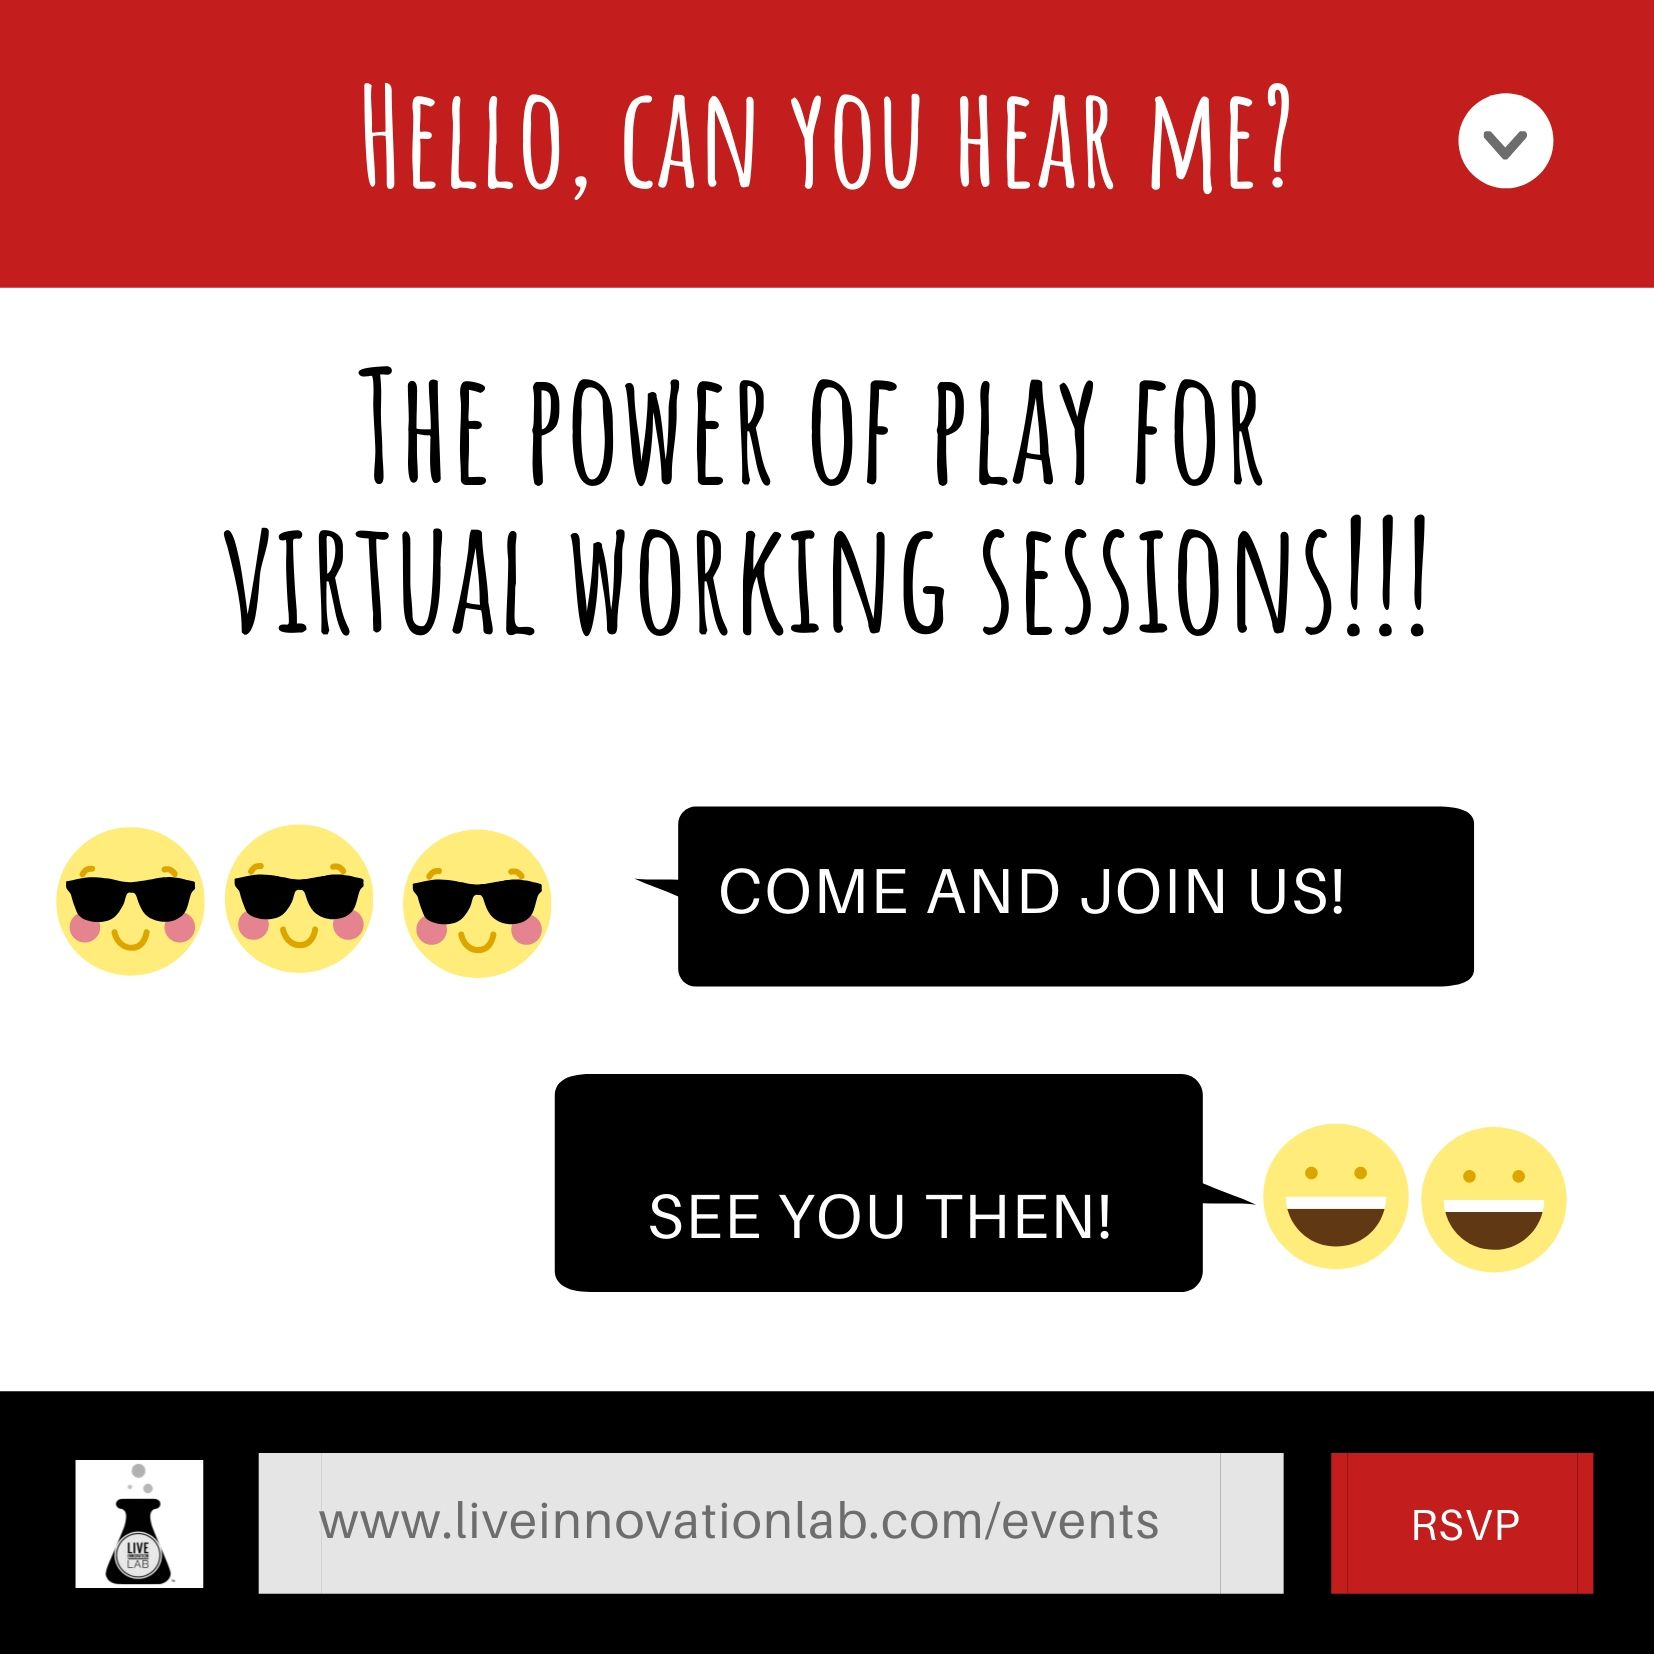 The power of play for virtual working sessions!!!